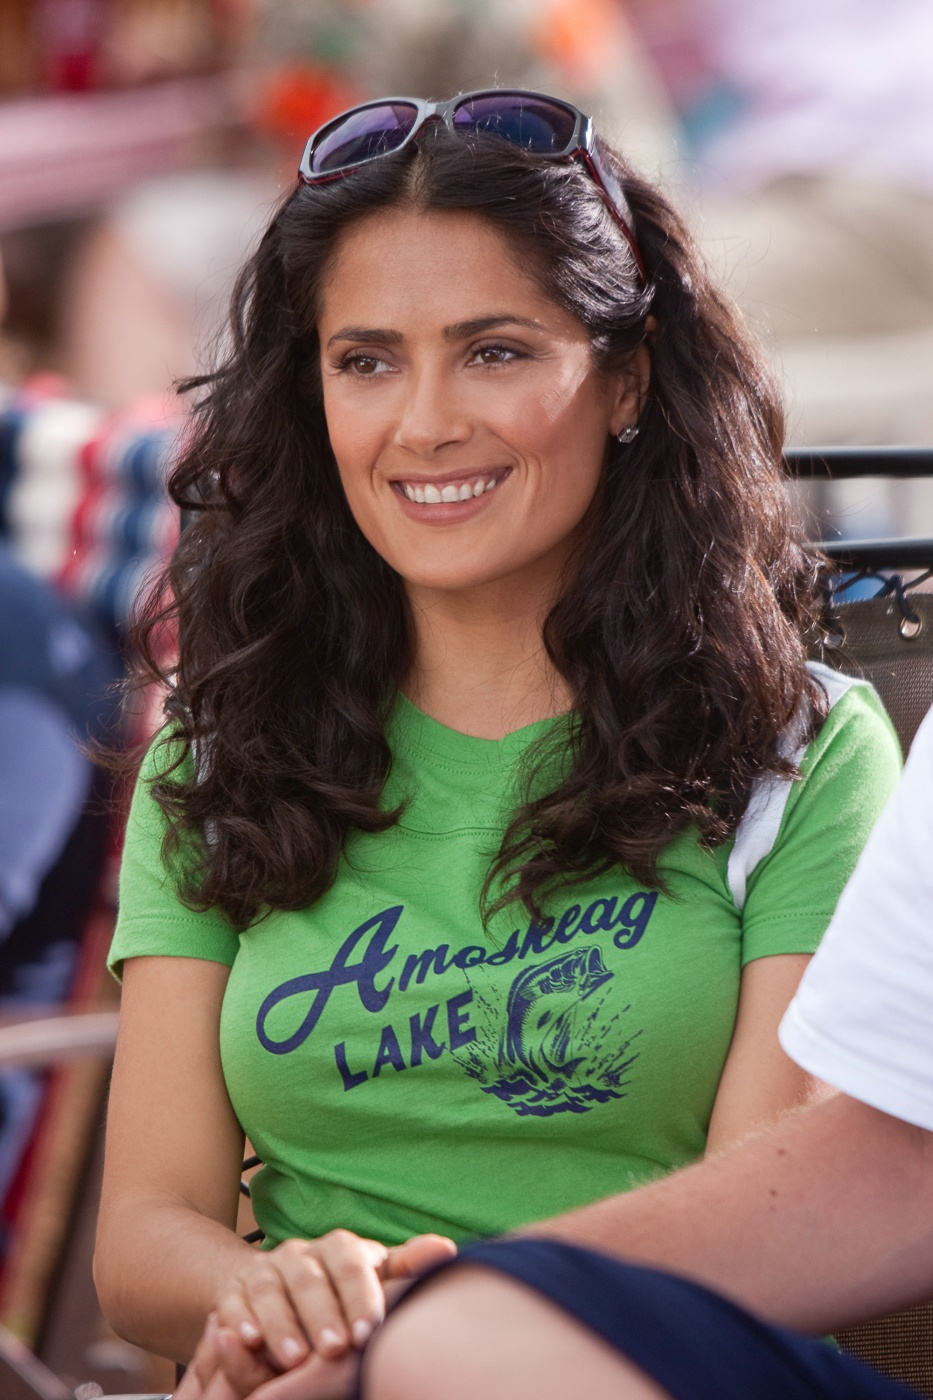 salma hayek grown ups bikini. hair salma hayek grown ups.